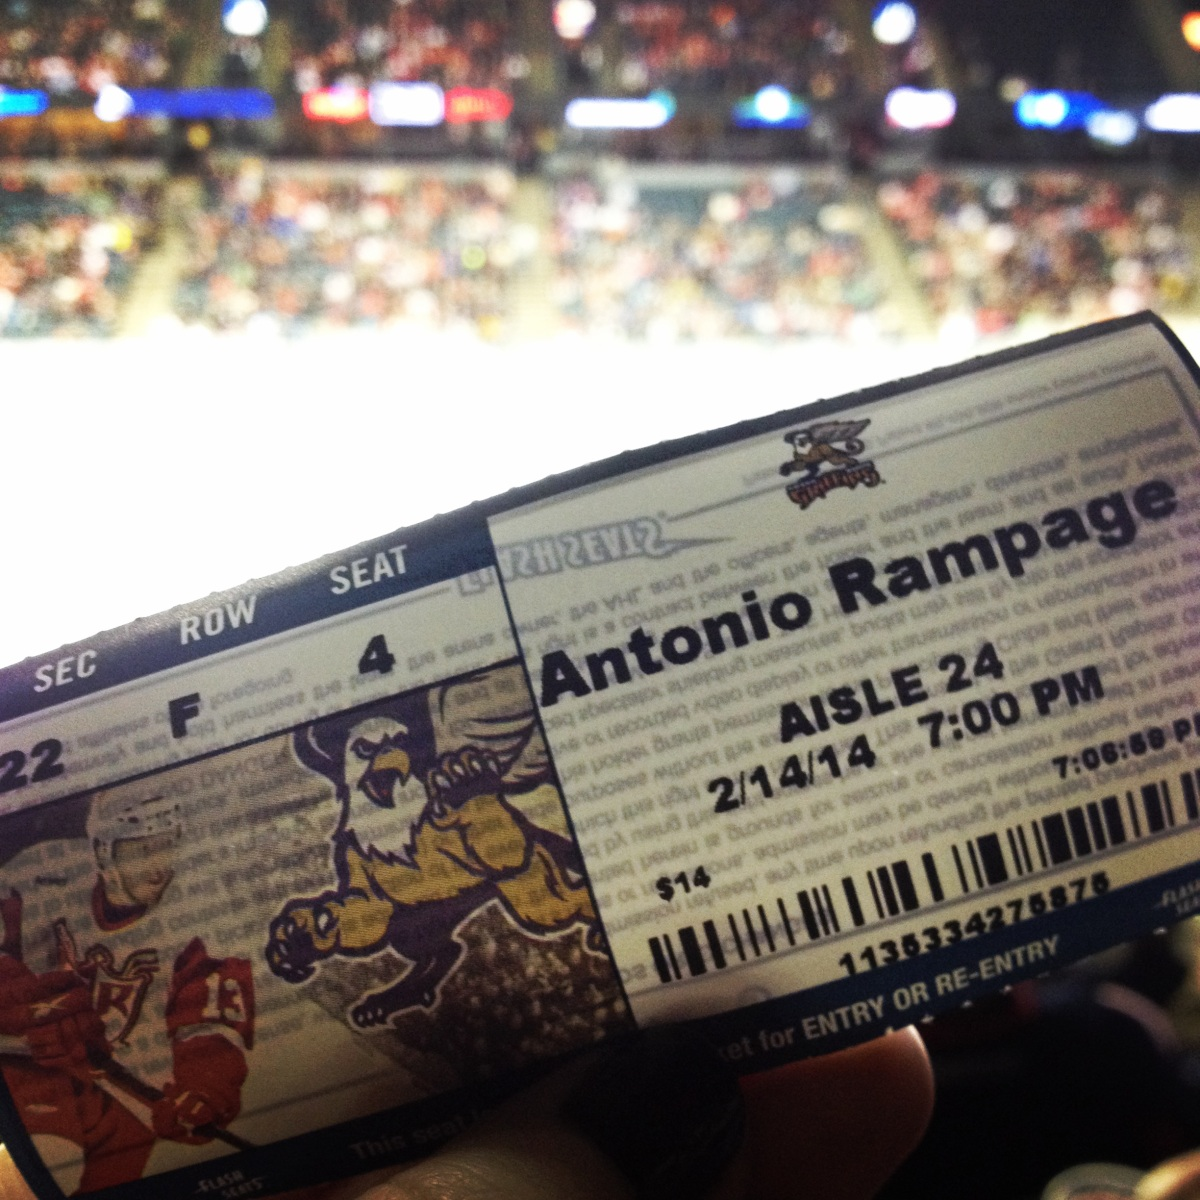 Why I love my city: Grand Rapids Griffins games